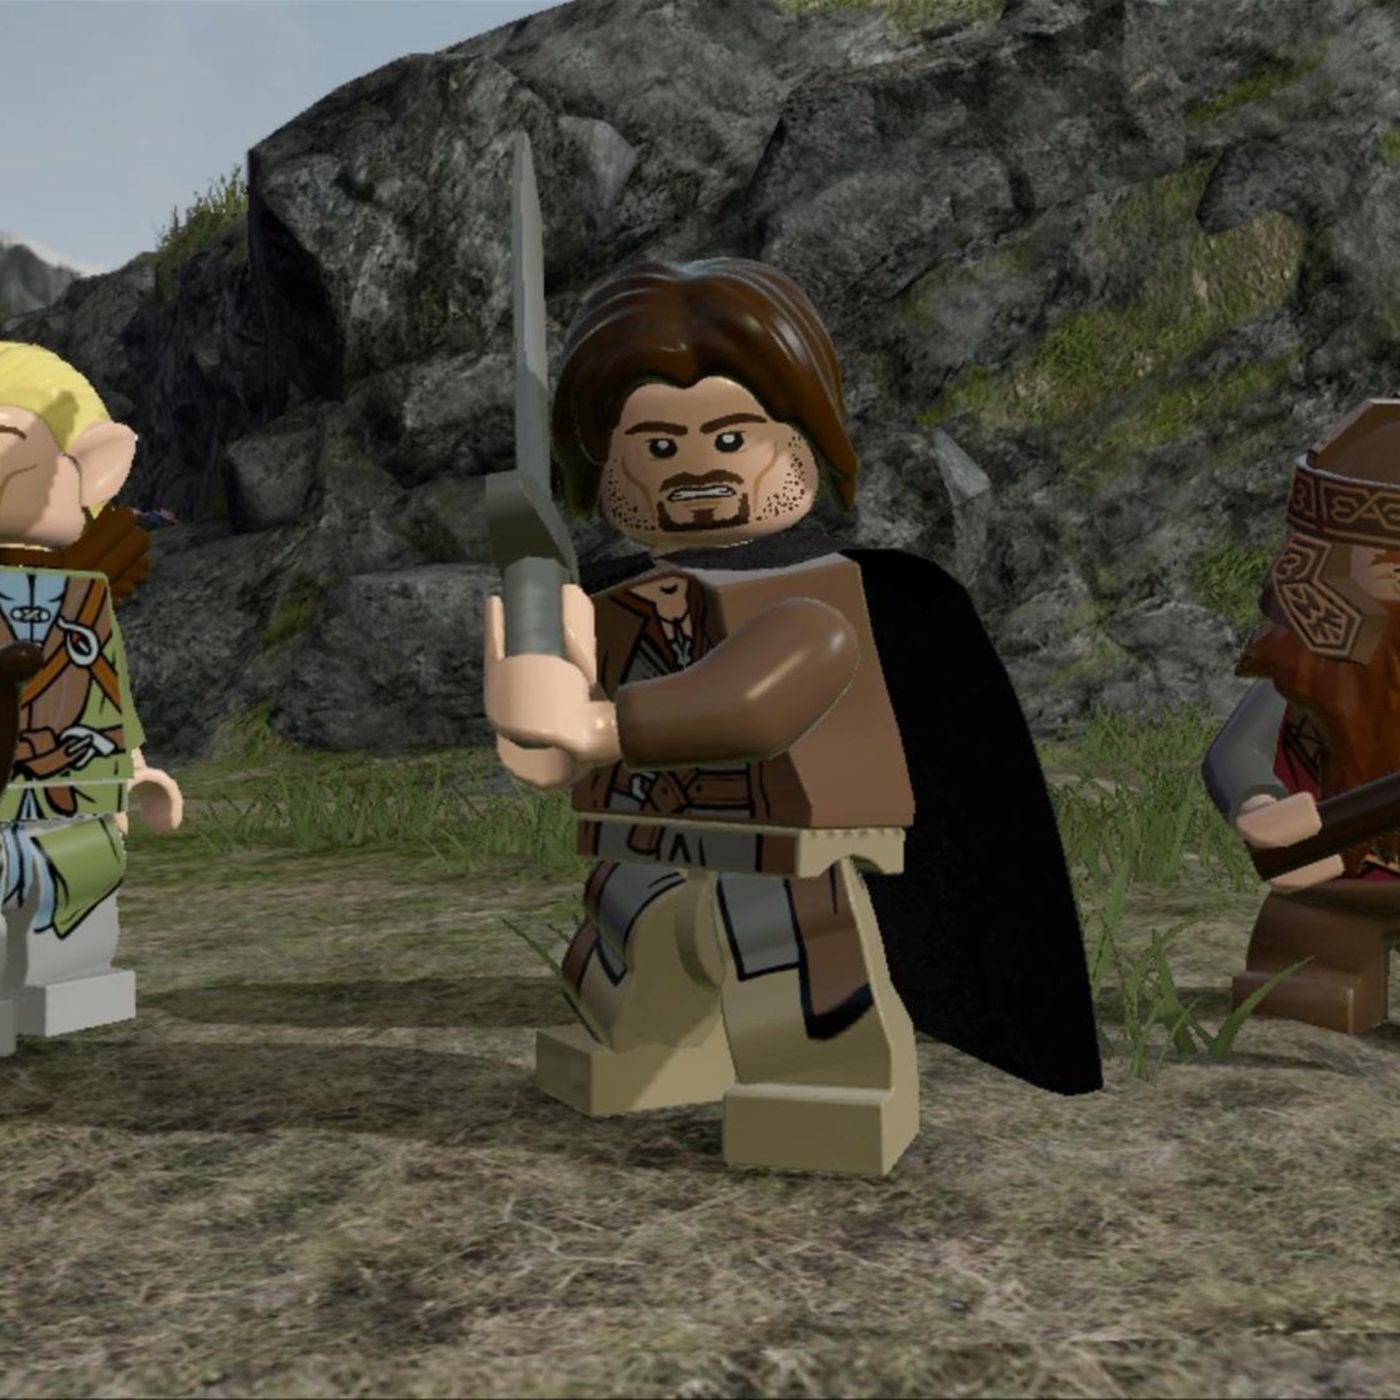 a6dbff7d334d5 Yes, Lego Lord of the Rings and The Hobbit are no longer for sale online -  Polygon